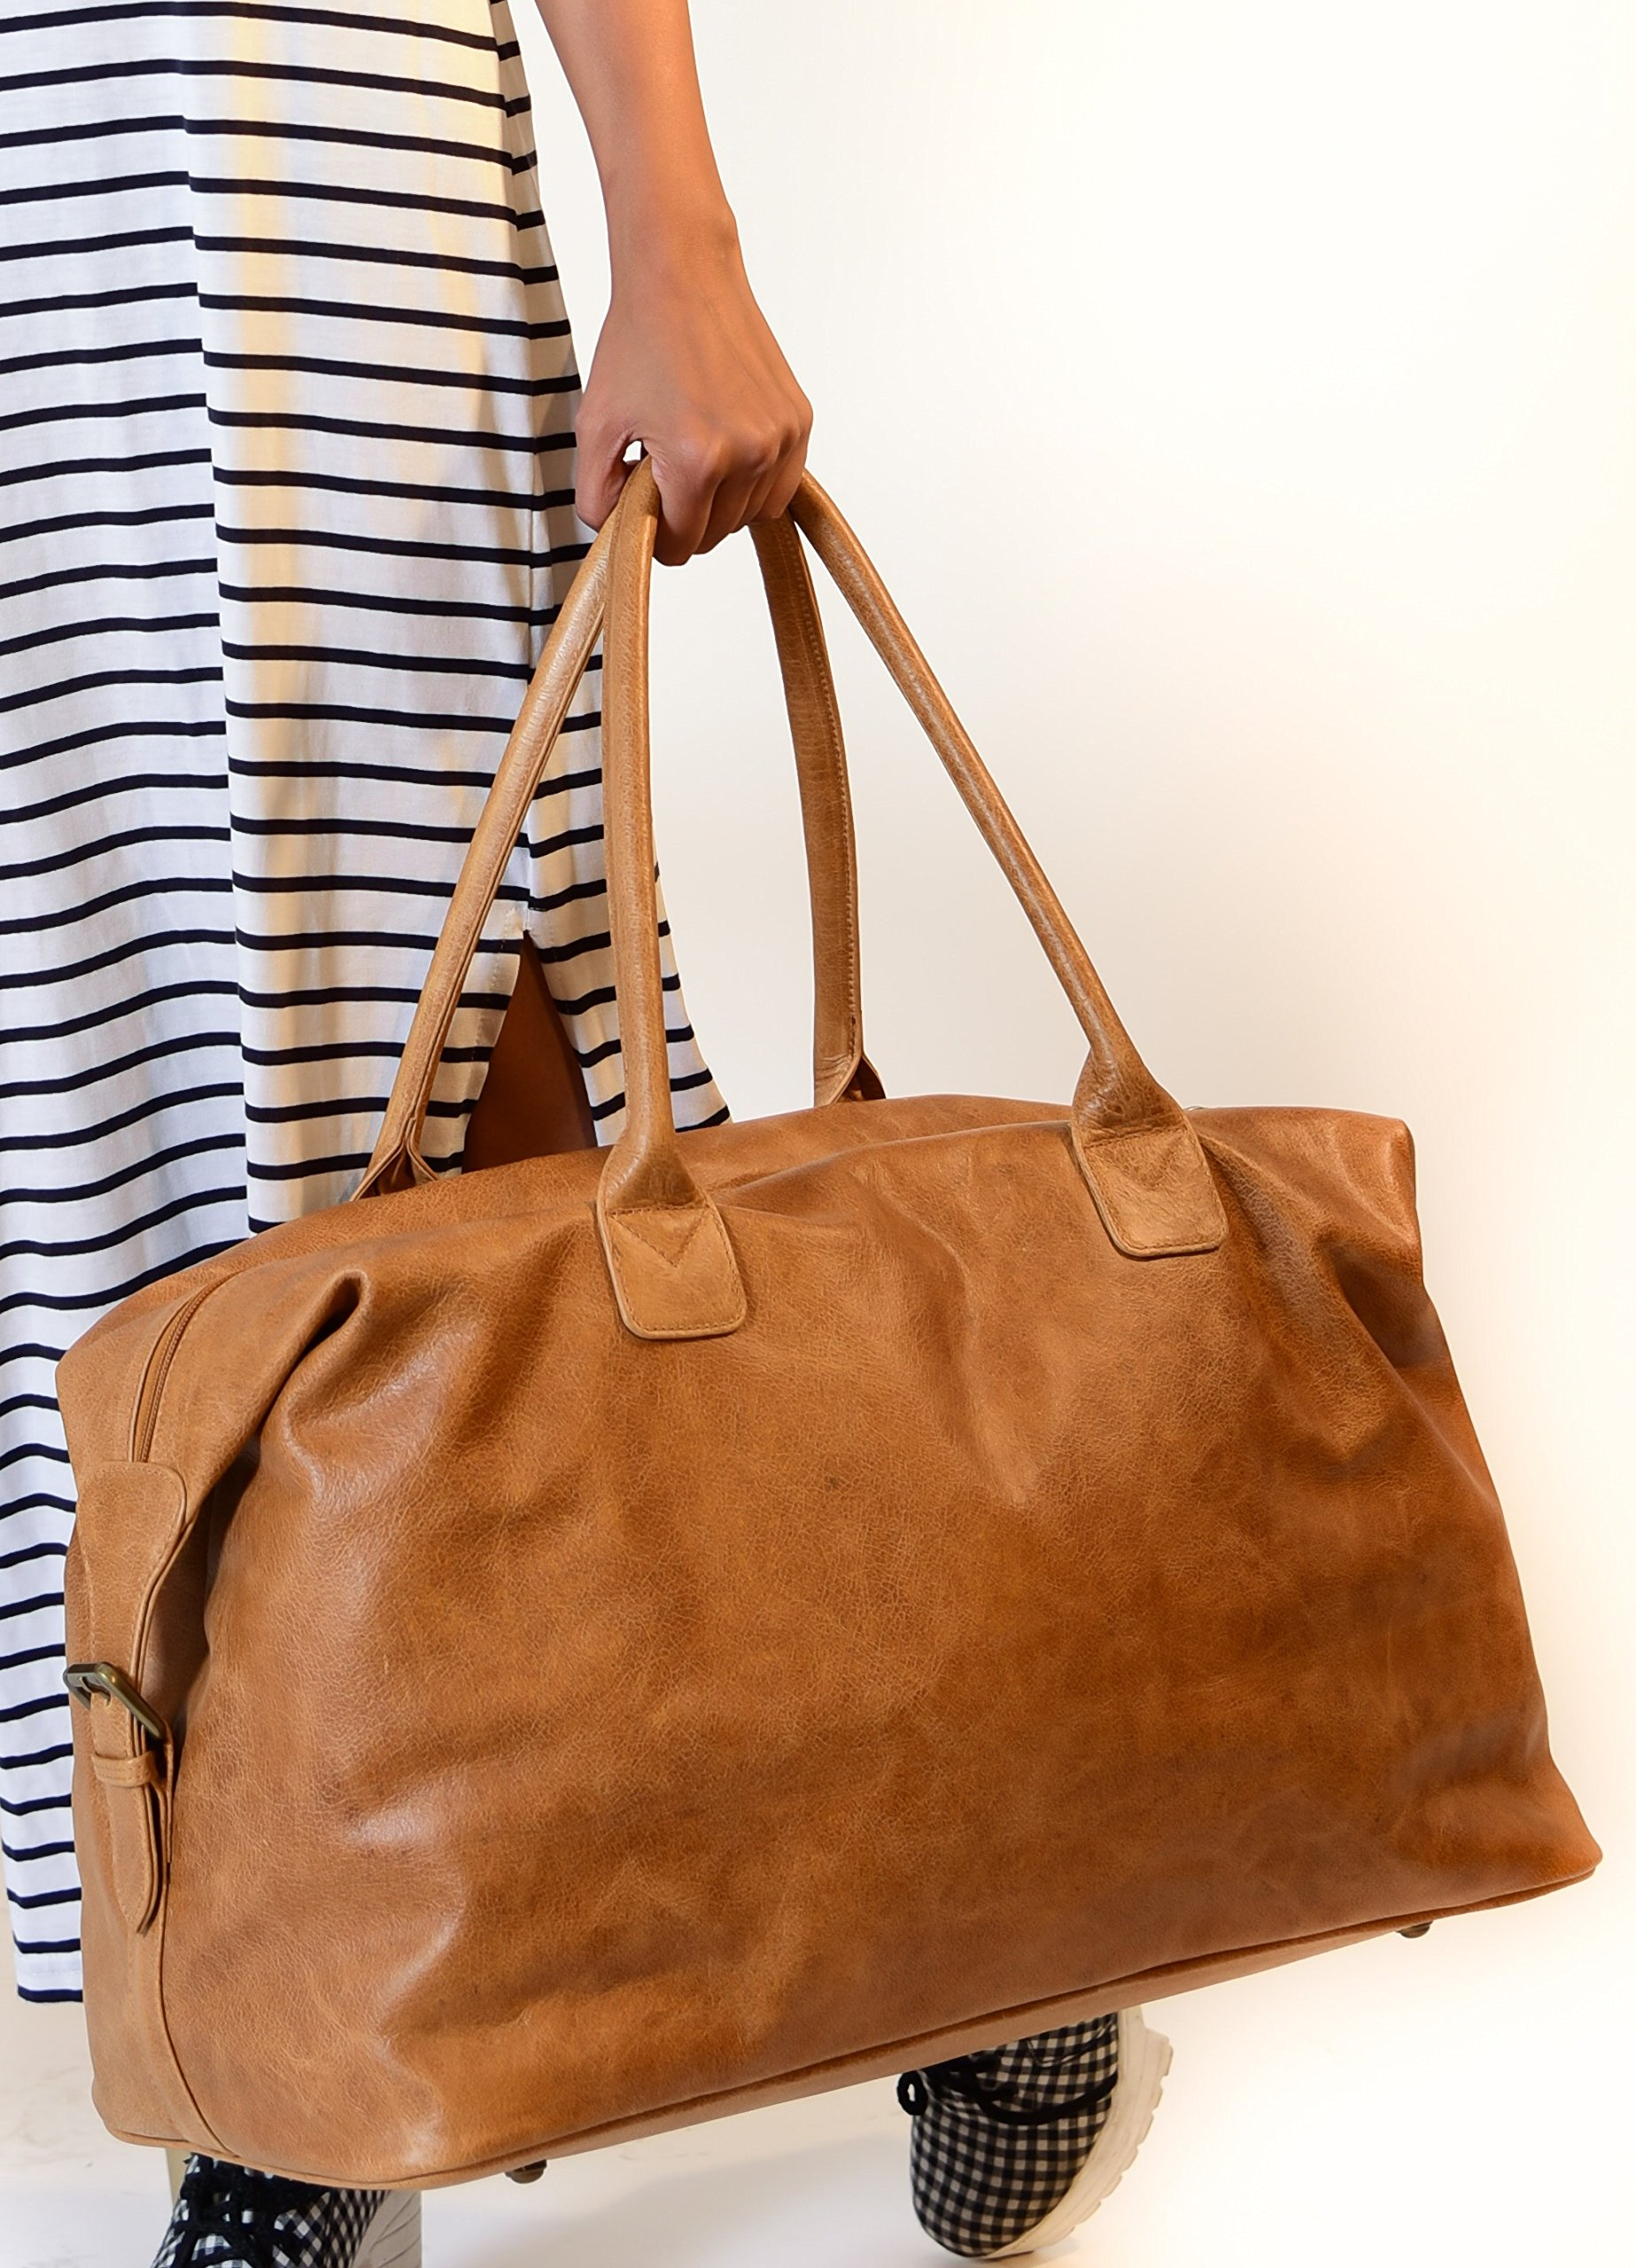 The Aartisan 21'' Handcrafted Genuine Leather Duffel Bag for Men Travel Weekend Bag (Chestnut), Free Gift Included, Multi Purpose Use by THE AARTISAN (Image #5)